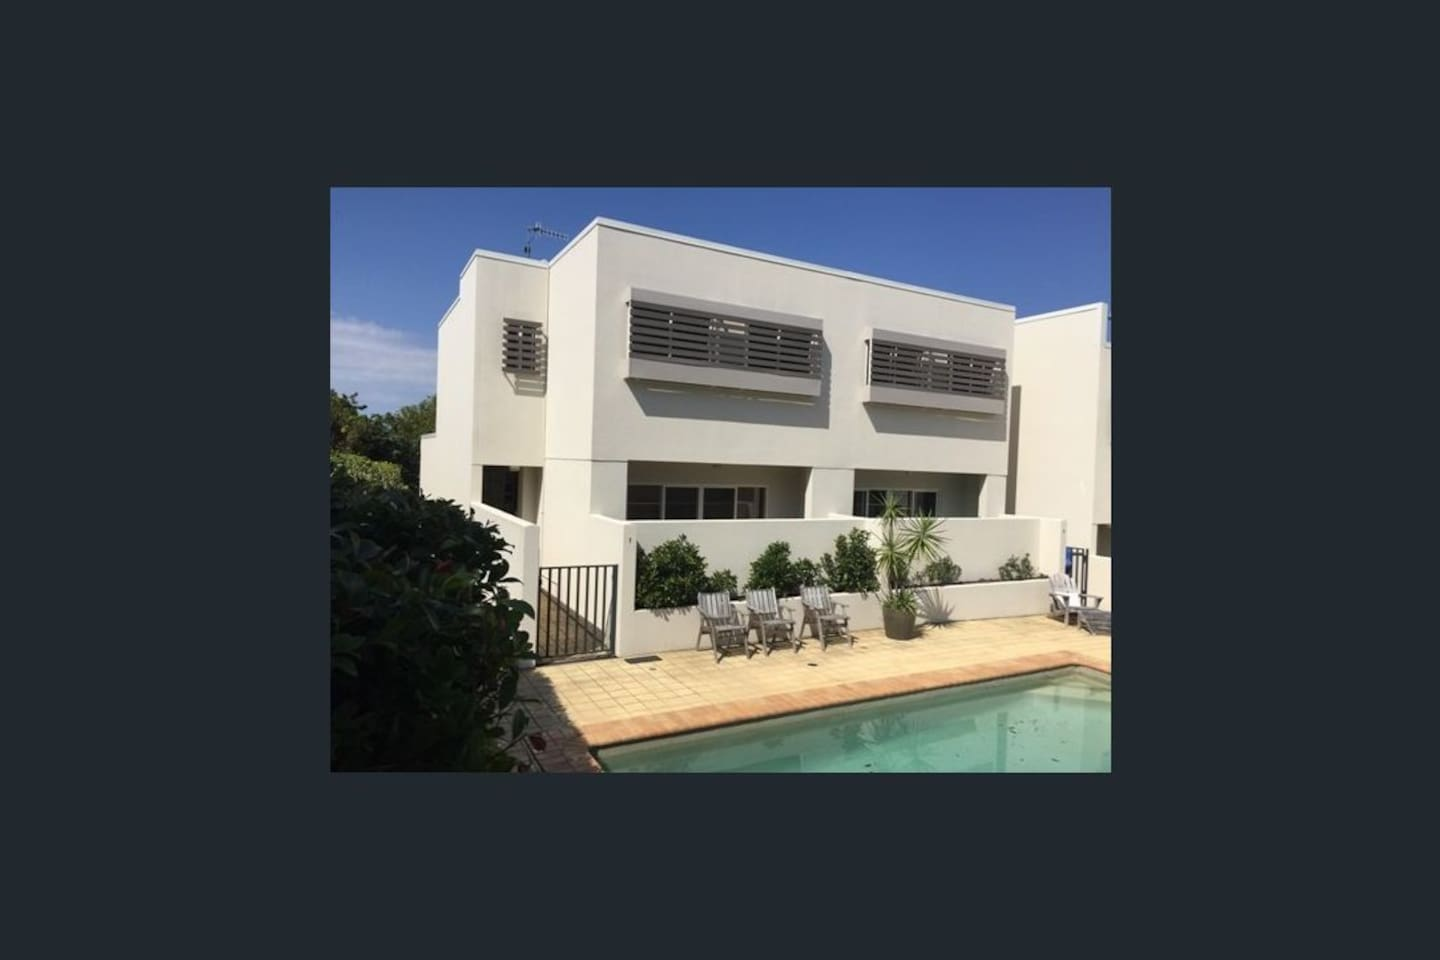 Three storey townhouse with only one common wall.  Direct access to pool through gate shown